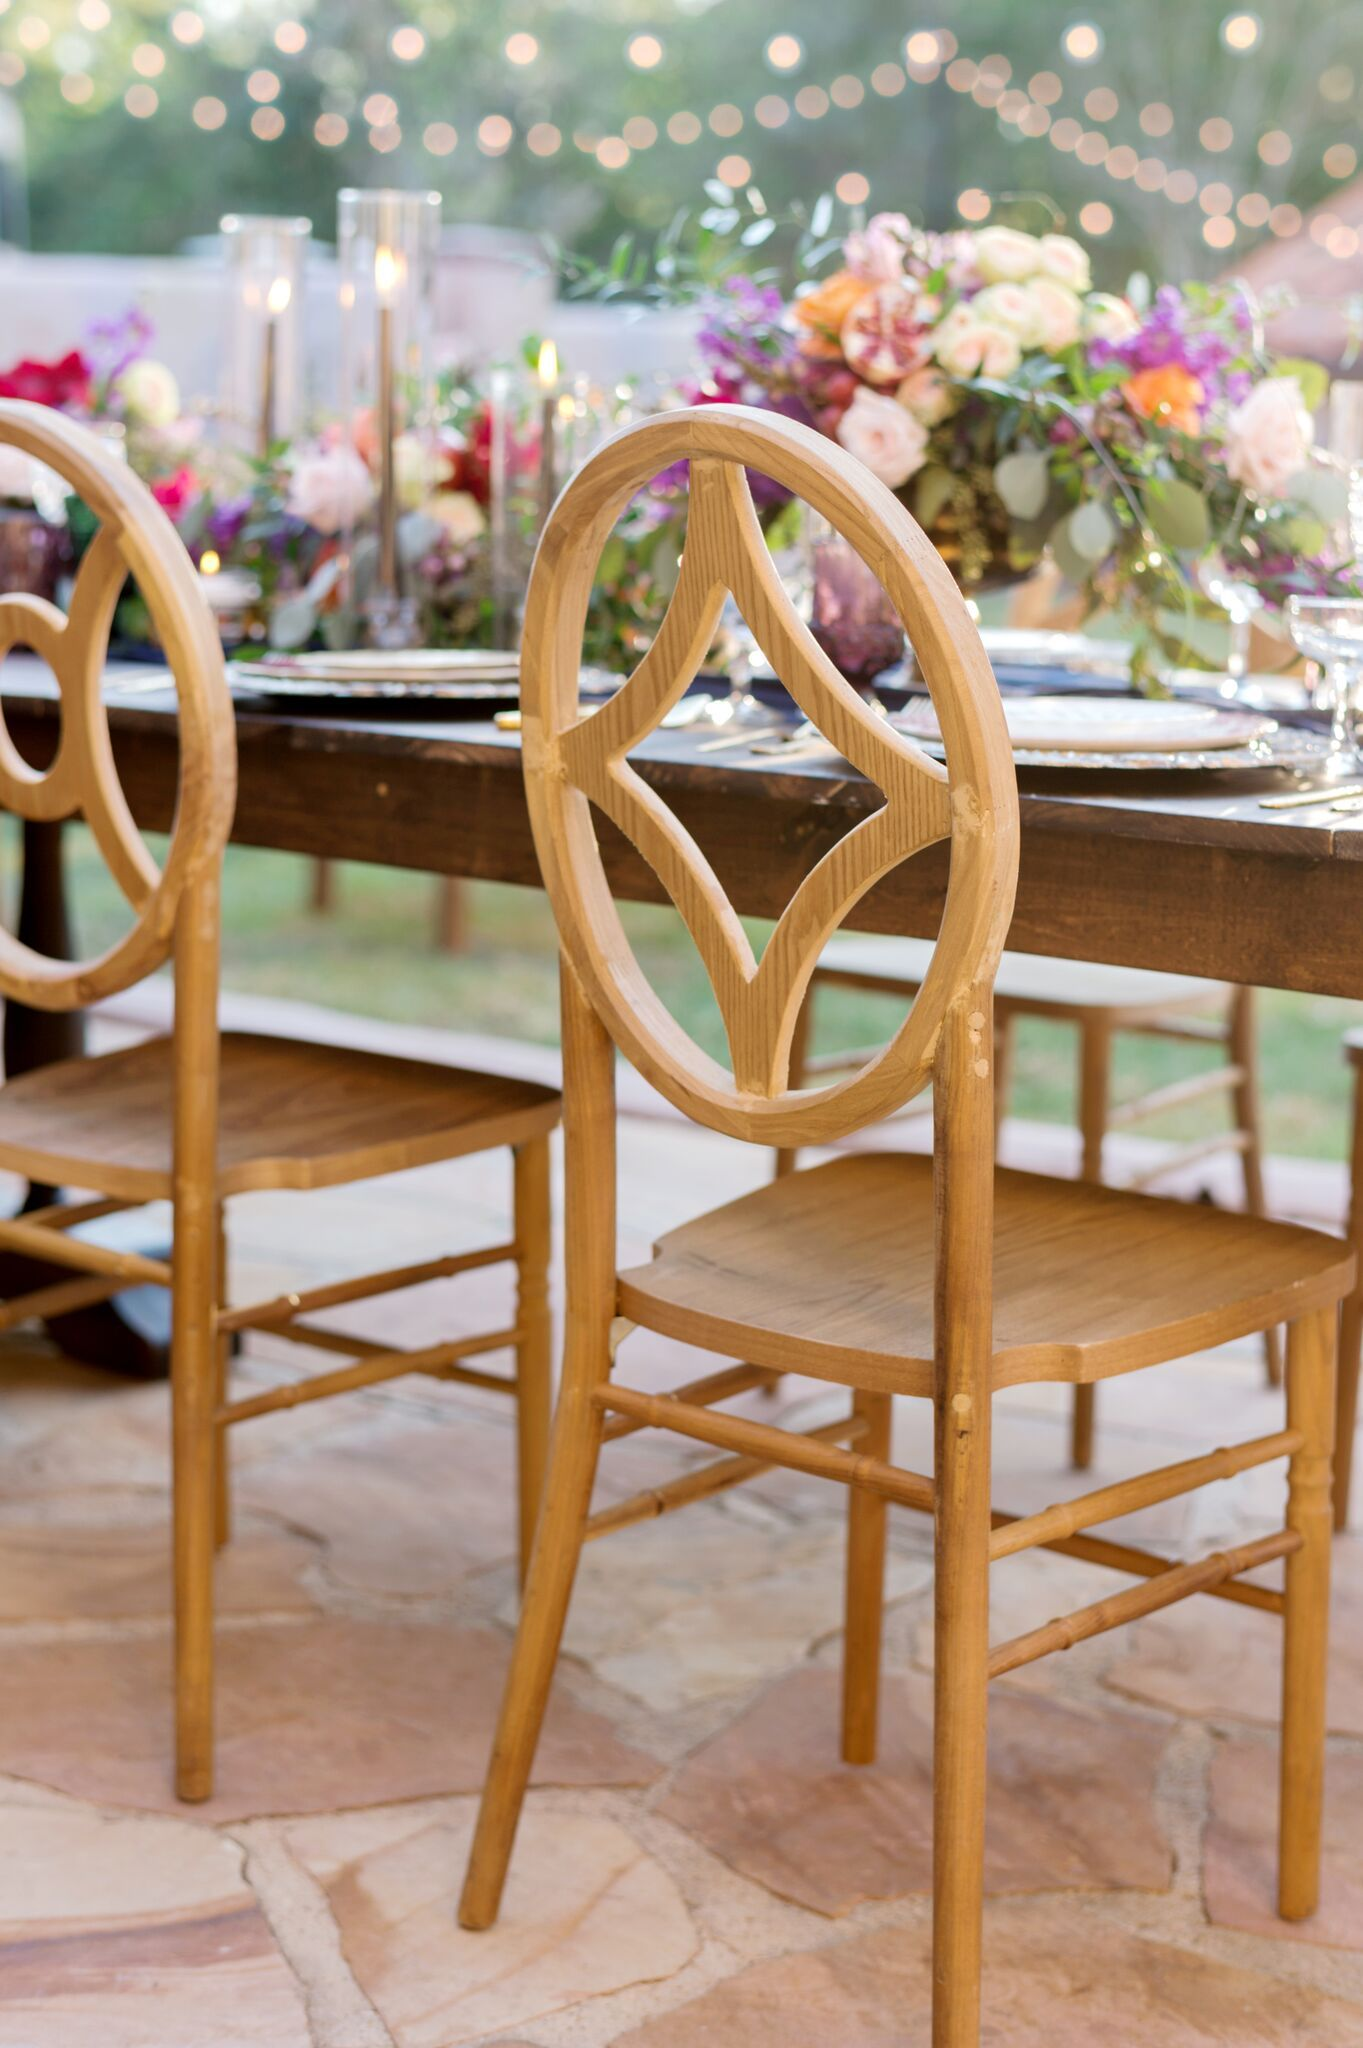 table chair rentals orlando equestrian saddle vineyard mismatched chairs wedding and party style decor floral tablescape ceremony reception colors events vendors florida